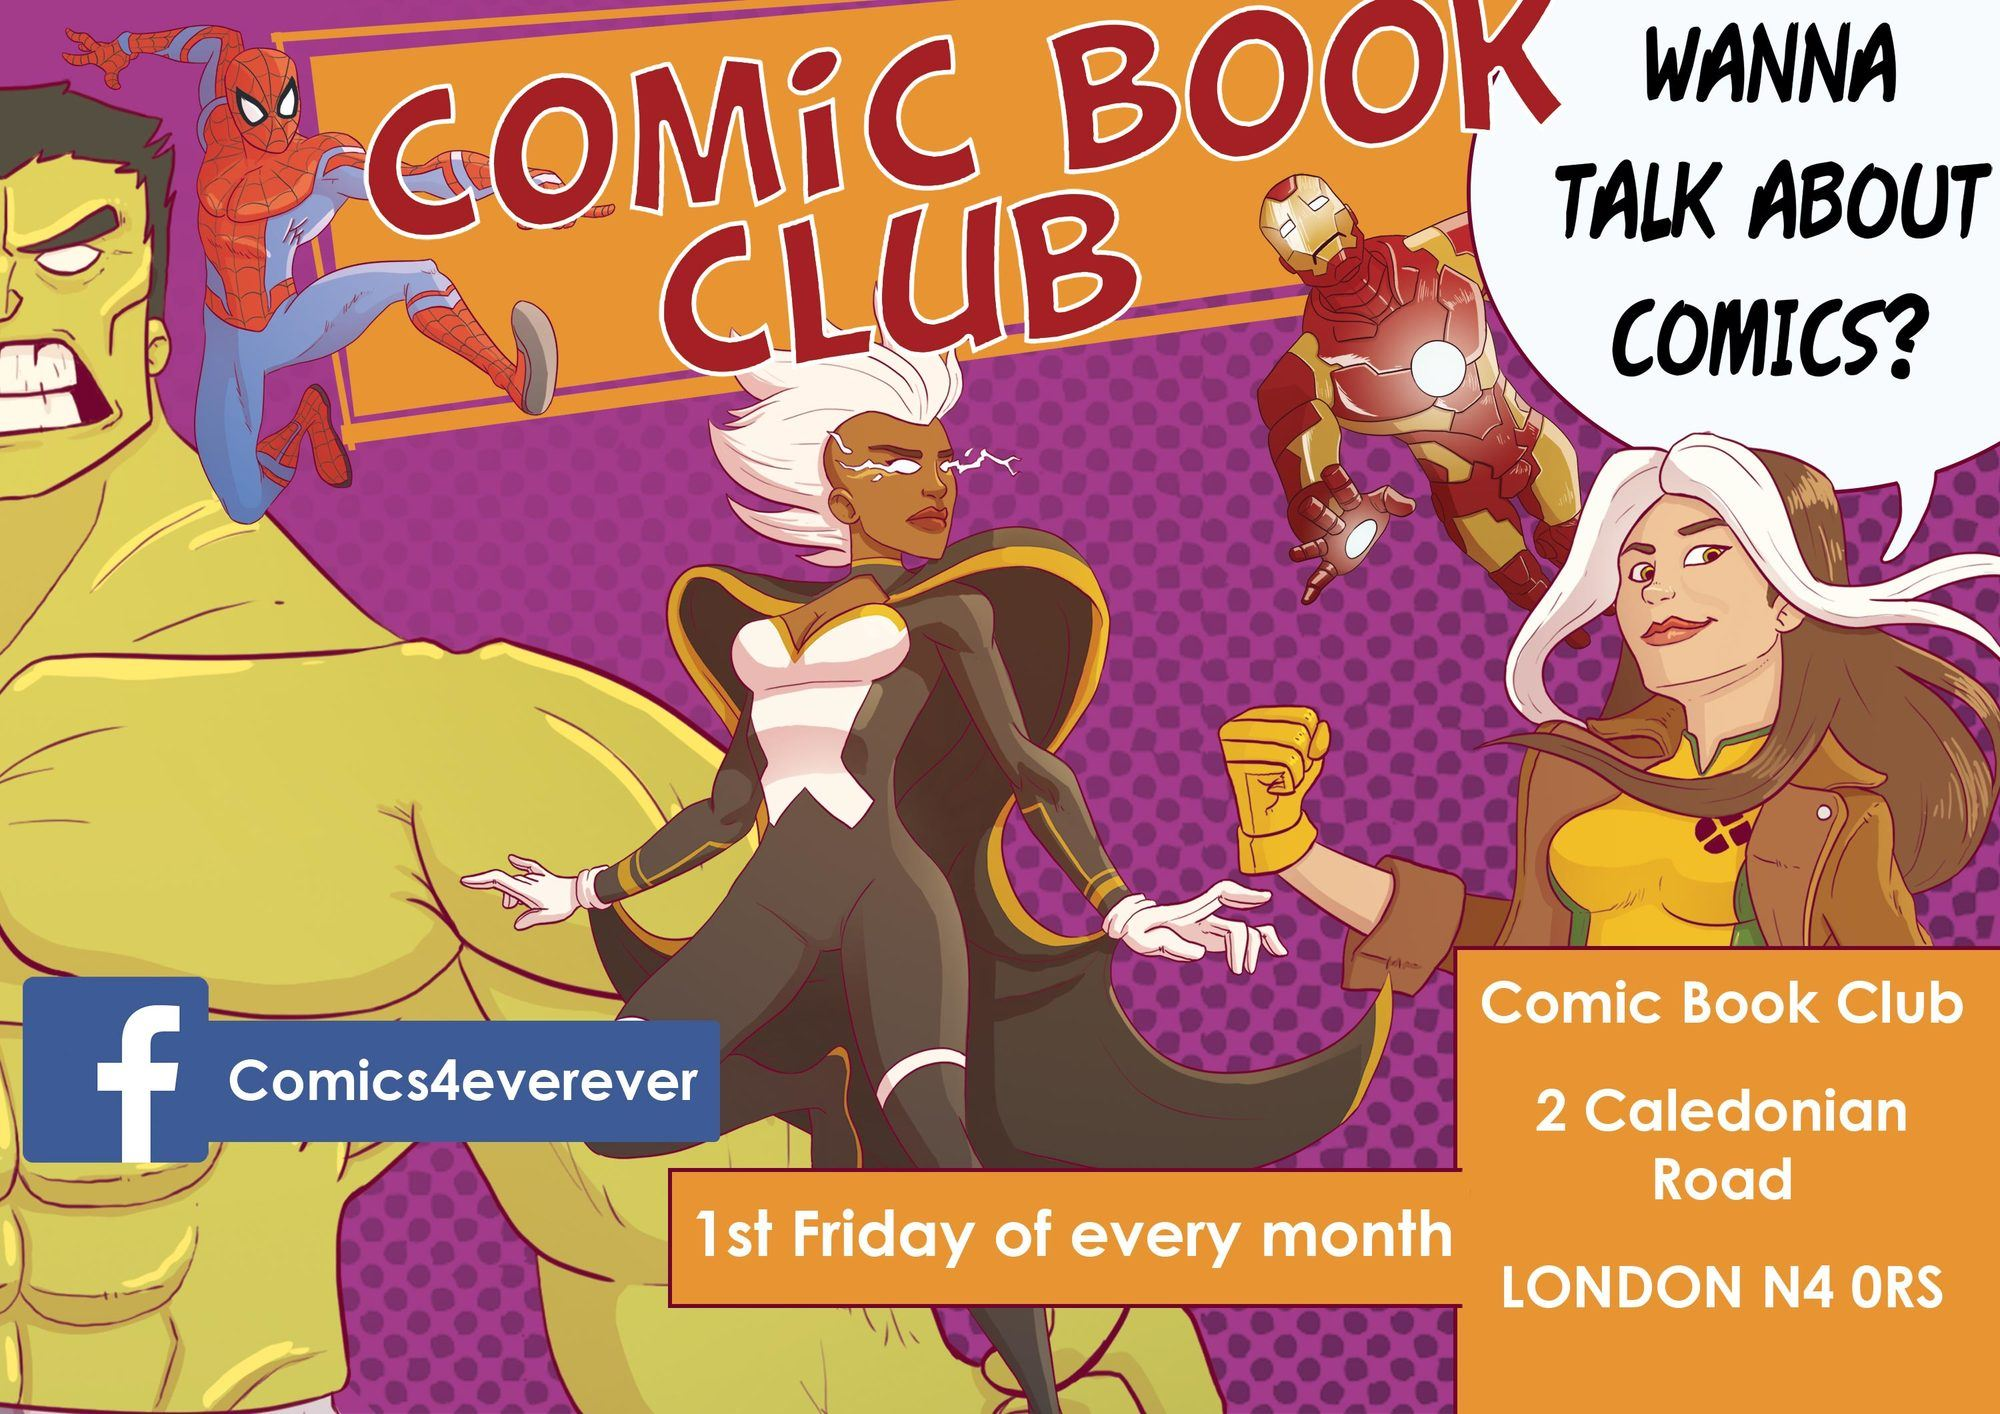 Poster for a Southampton comic book club